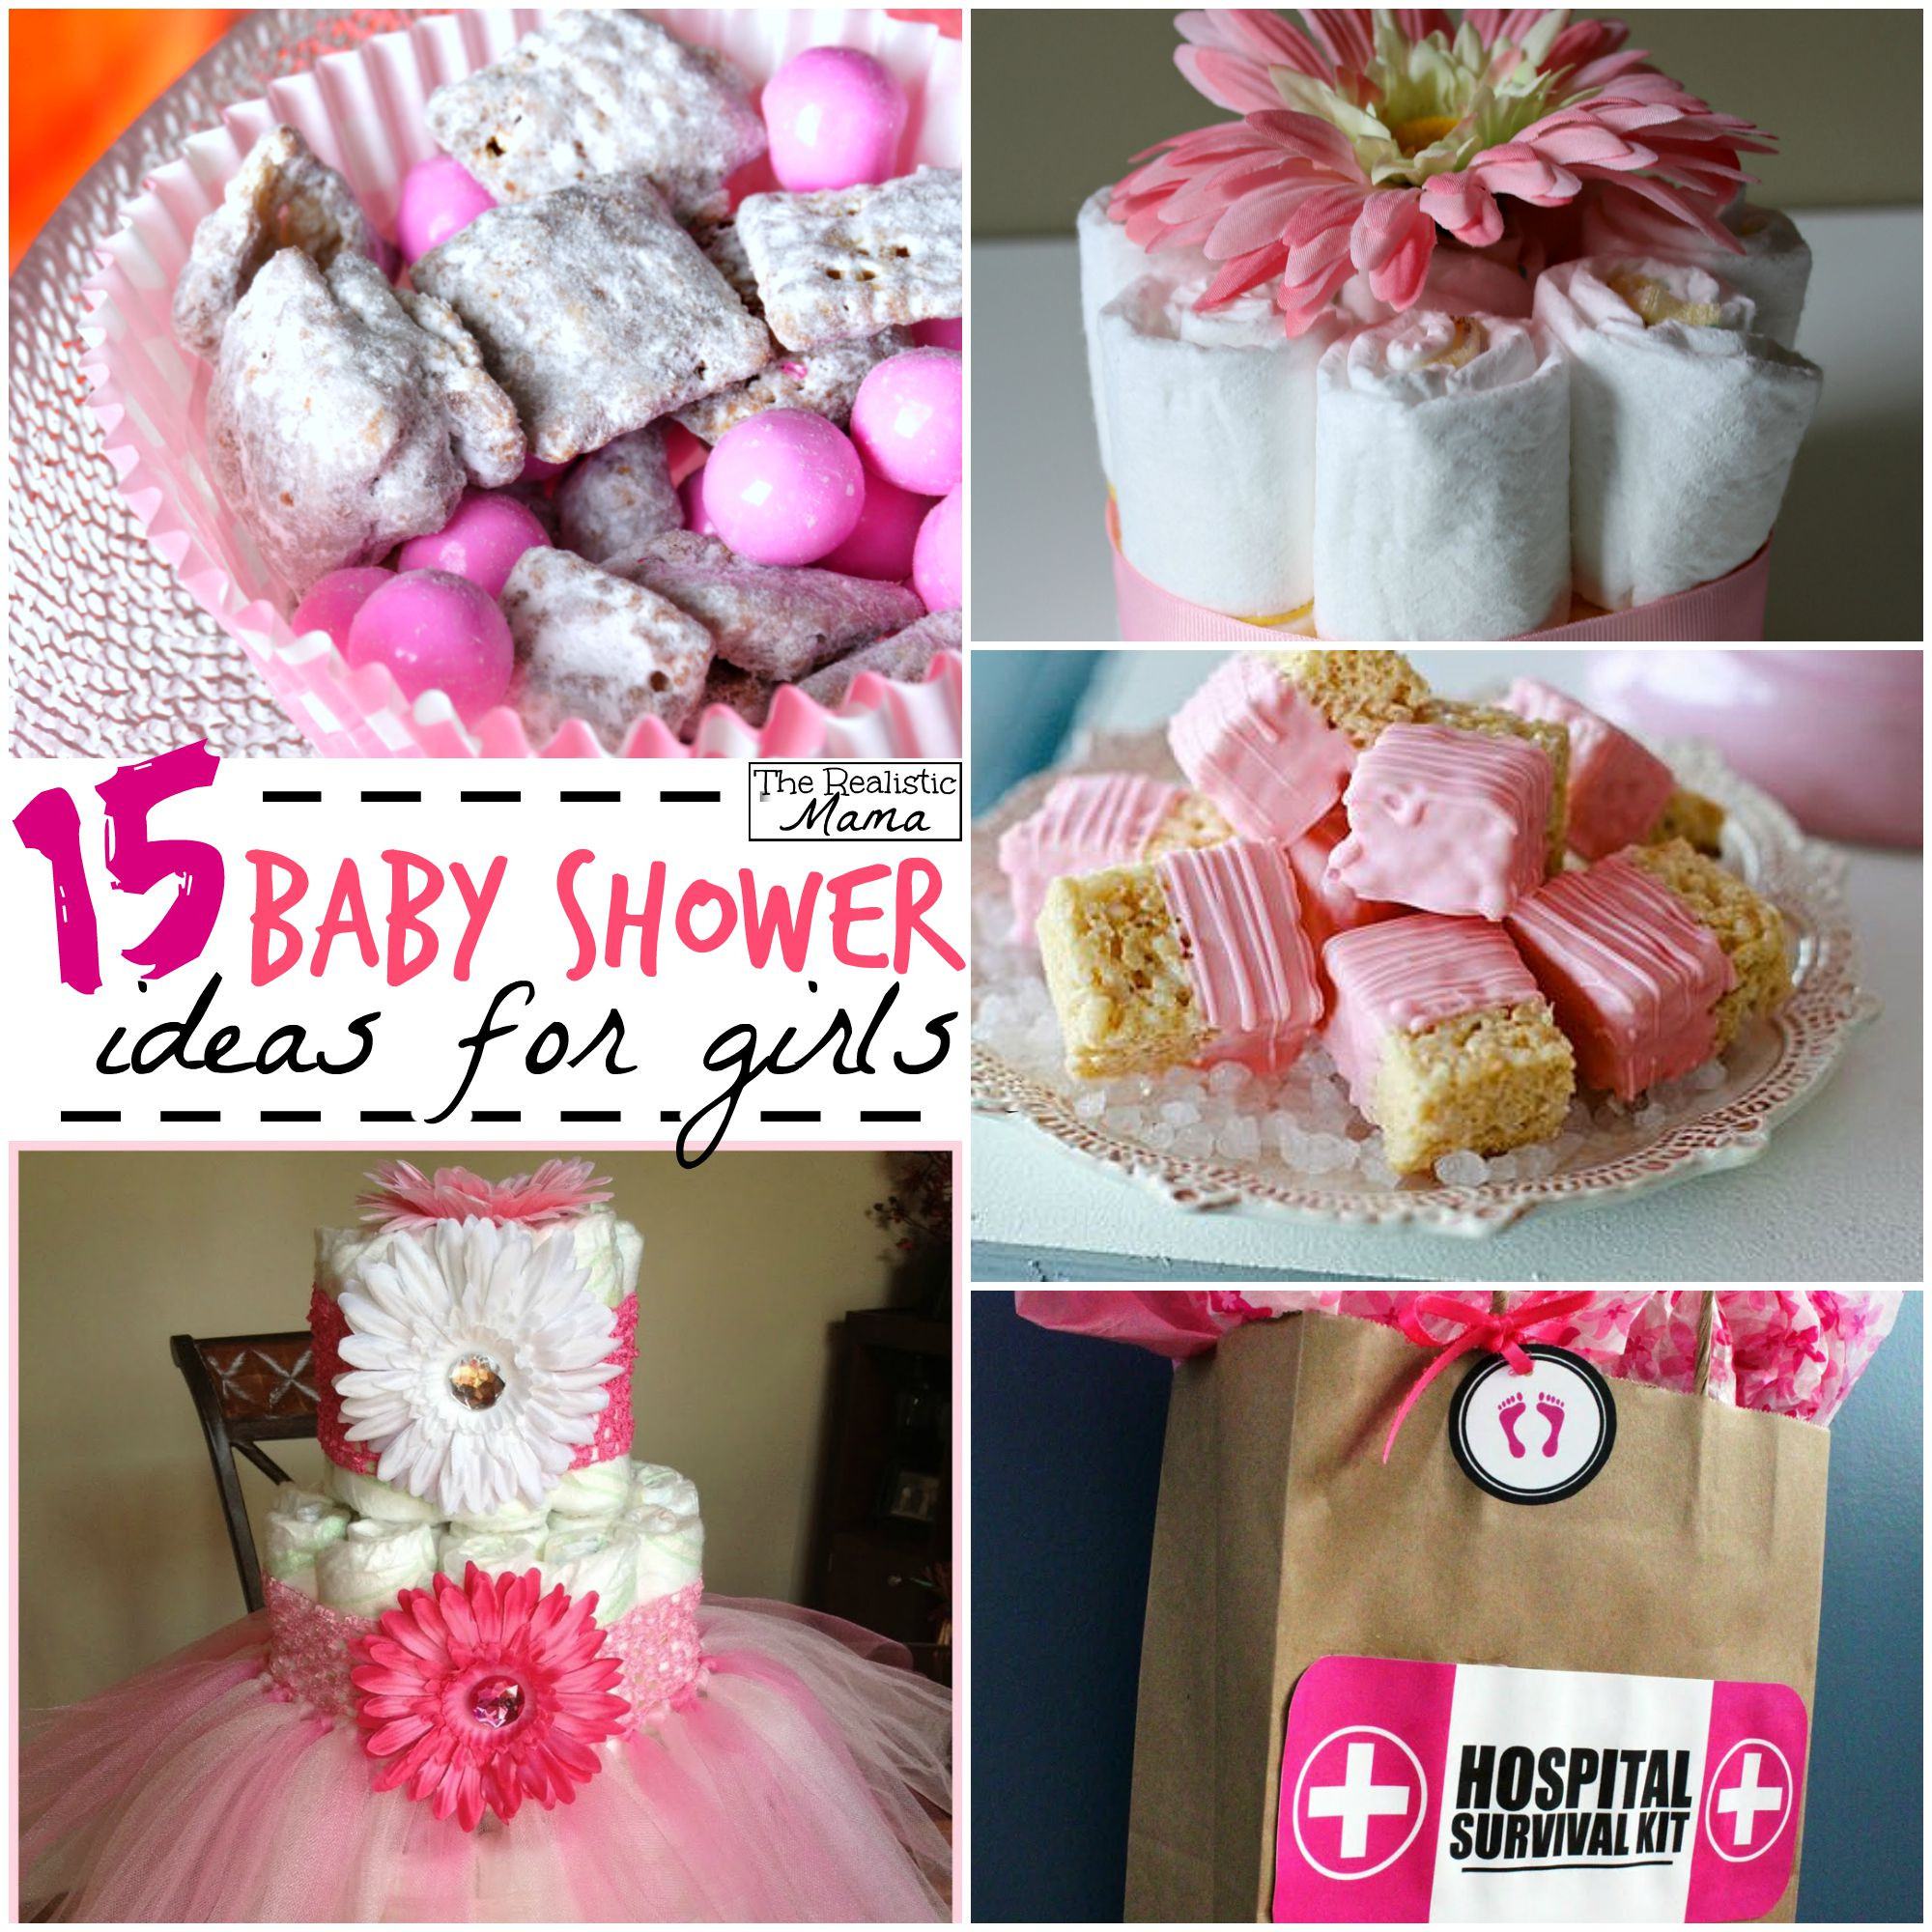 Best ideas about Cute Baby Shower Gift Ideas For A Girl . Save or Pin 15 Baby Shower Ideas for Girls The Realistic Mama Now.